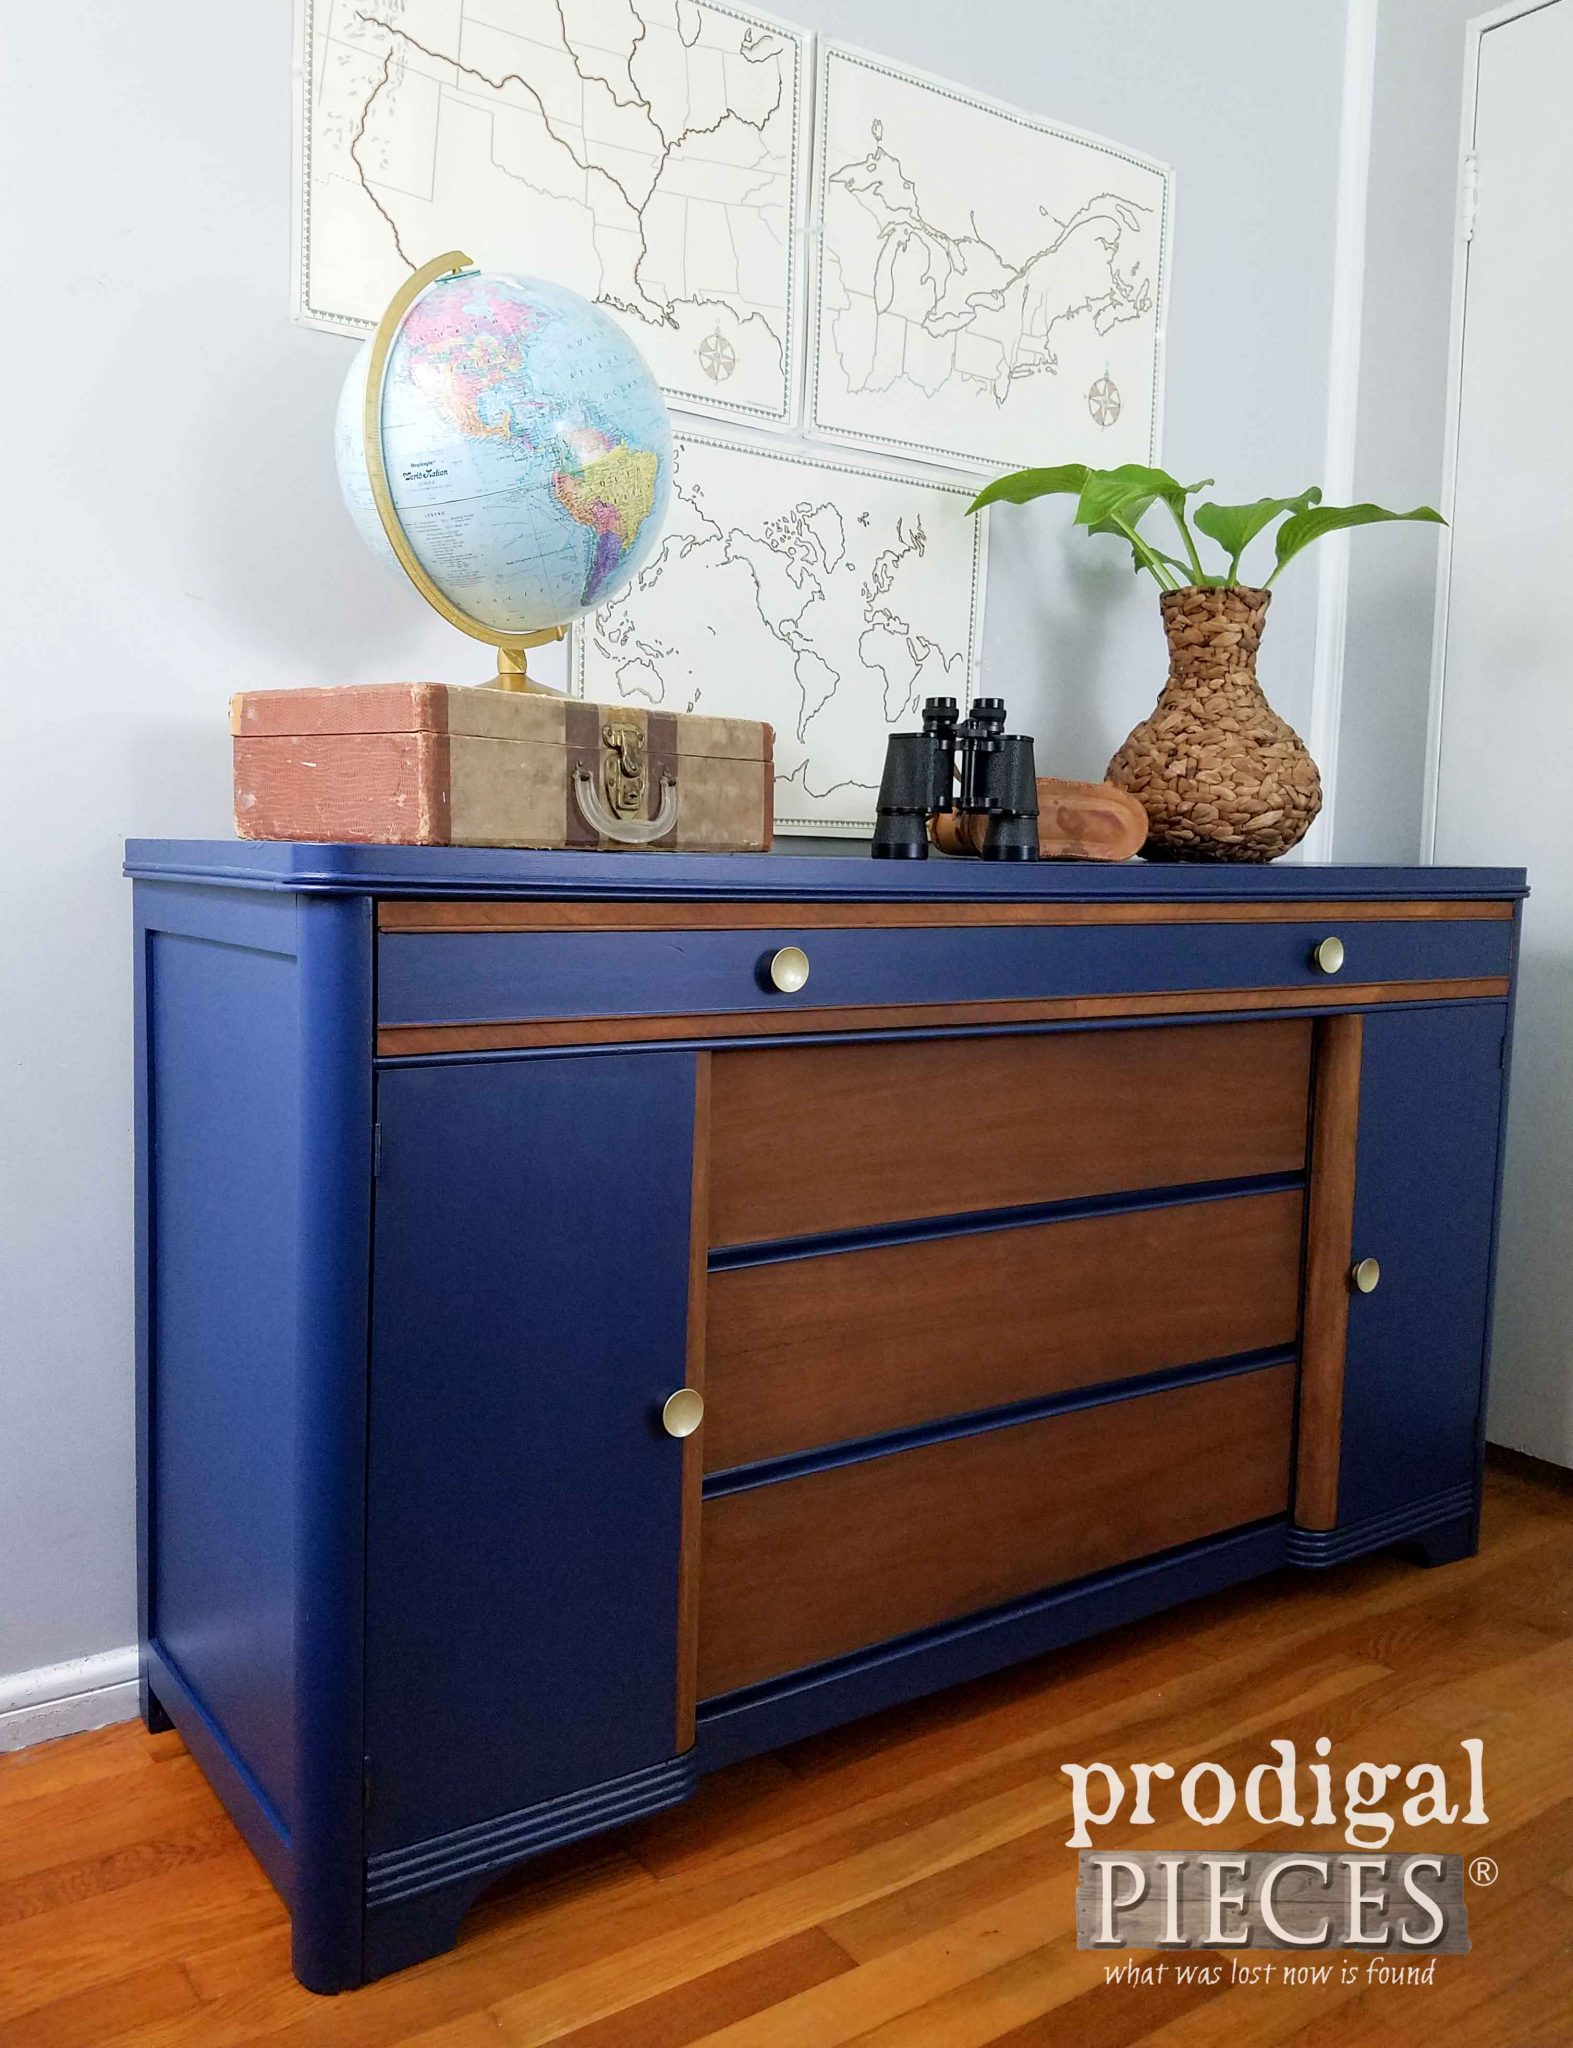 Modern Chic Art Deco Buffet by Prodigal Pieces | prodigalpieces.com